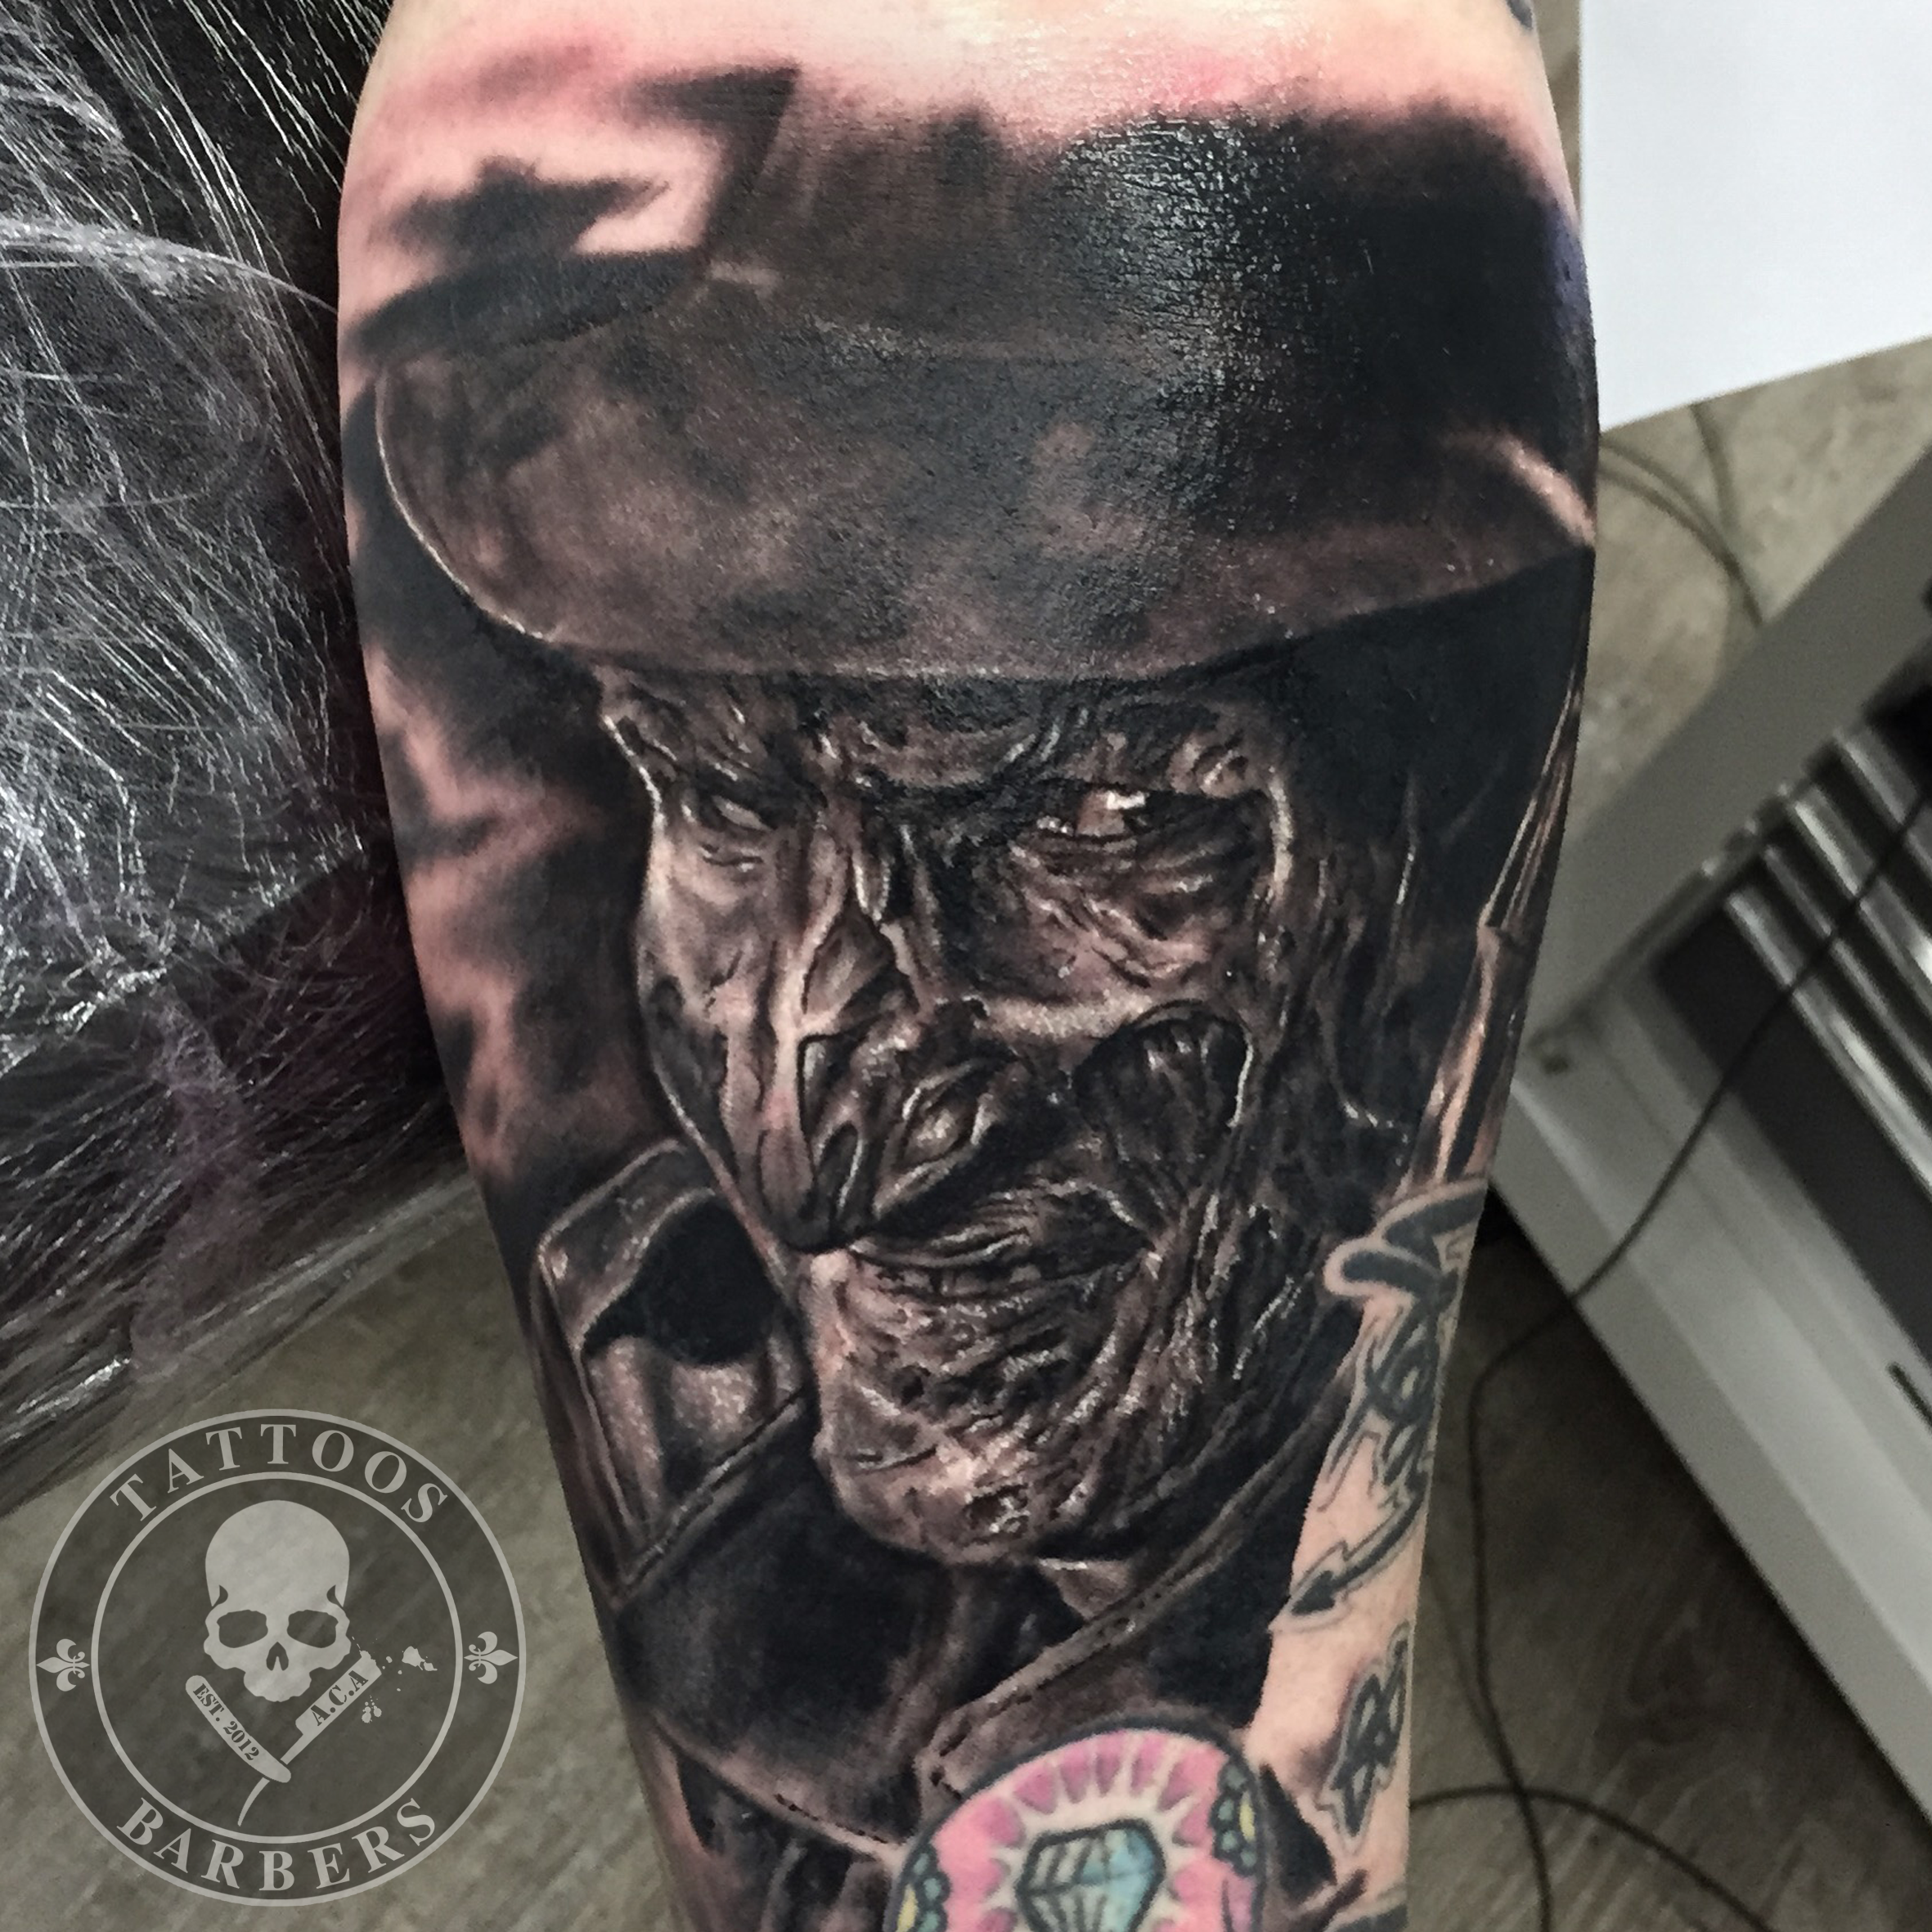 A Cut of Art Tattoo Studio & Barbershop in Selsdon, Croydon | Custom Tattoos, Cover-up's, horror tattoos, fine art tattoos, portrait tattoos by Zsolt.